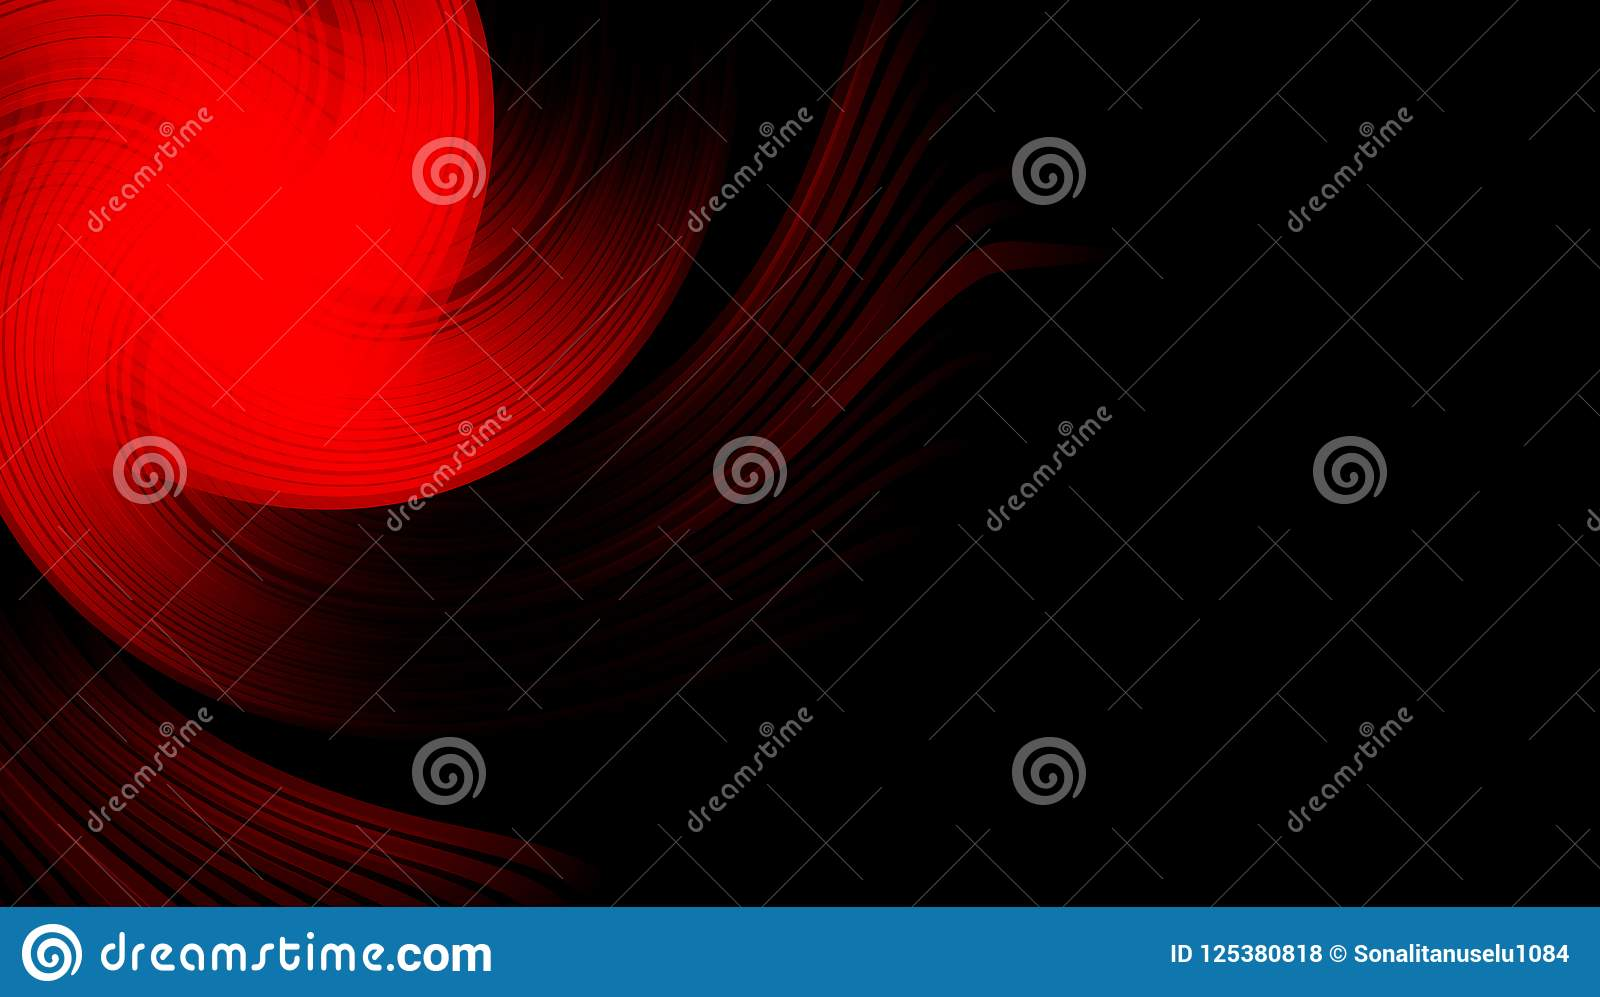 Red And Black Abstract Vector Shaded Background Wallpaper Illustration